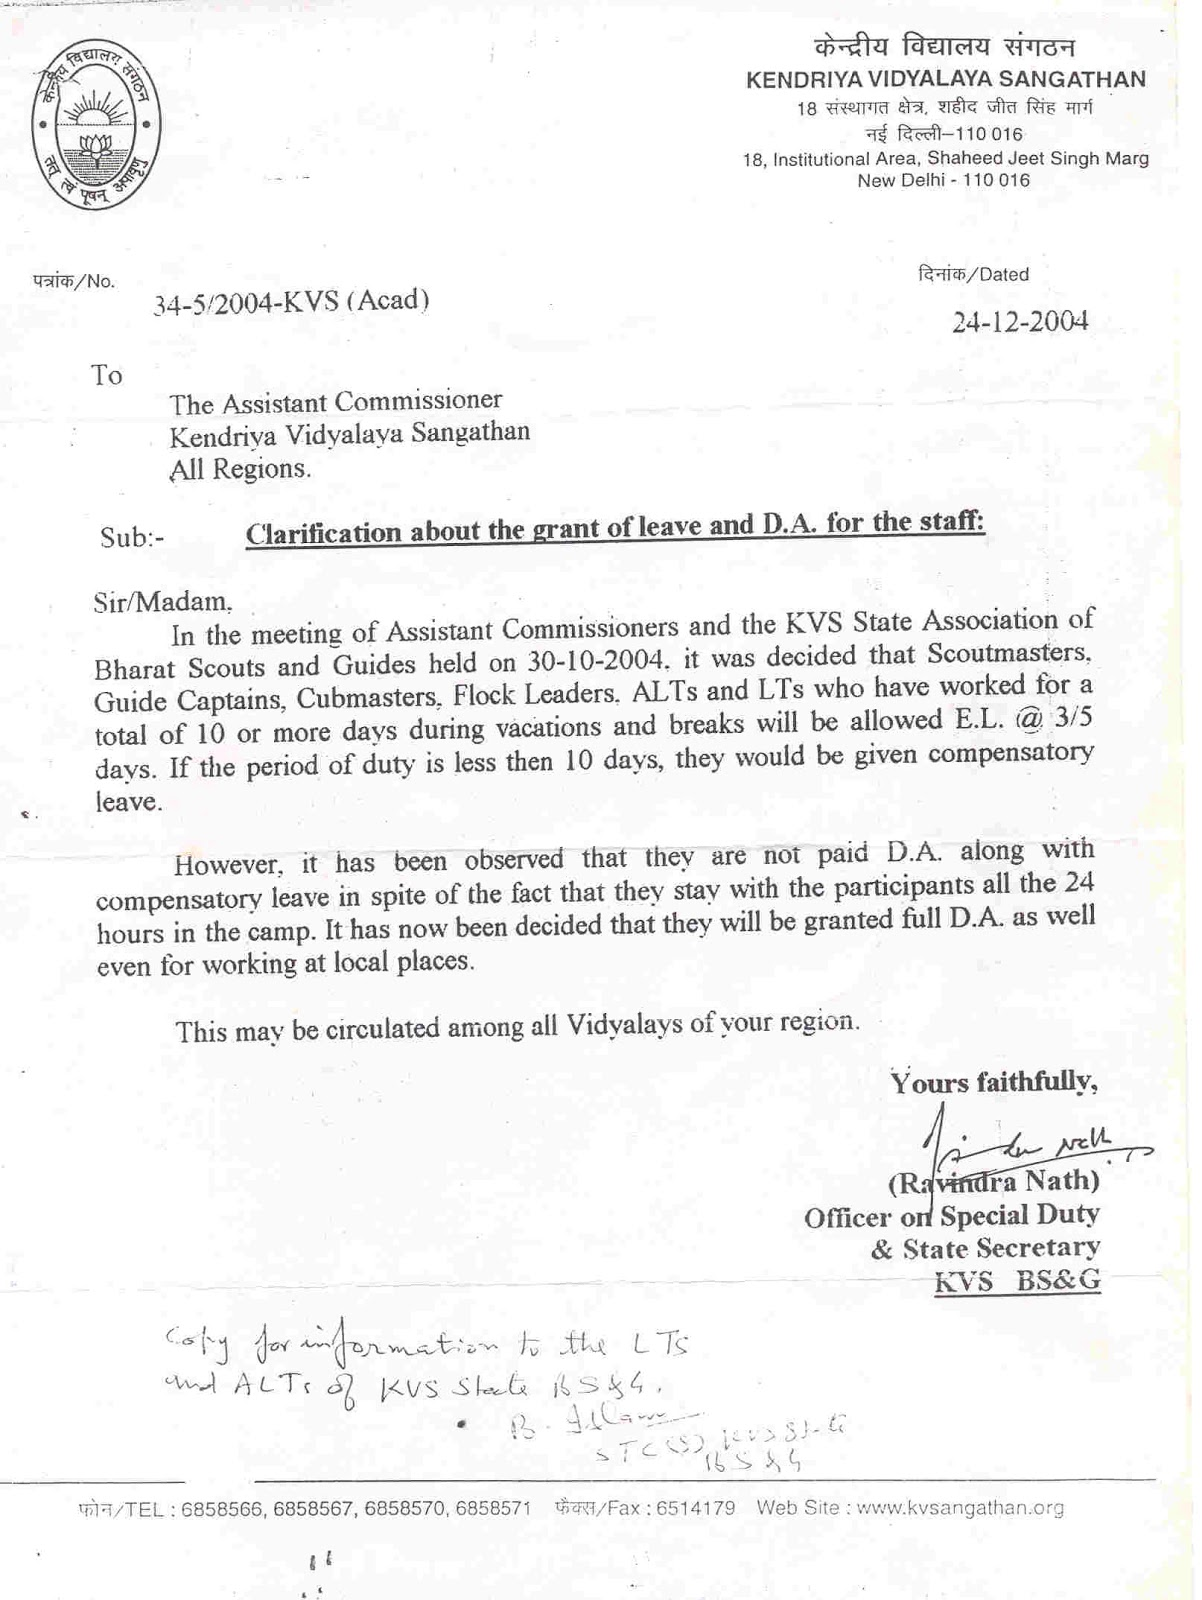 Format of application letter for leave to principal